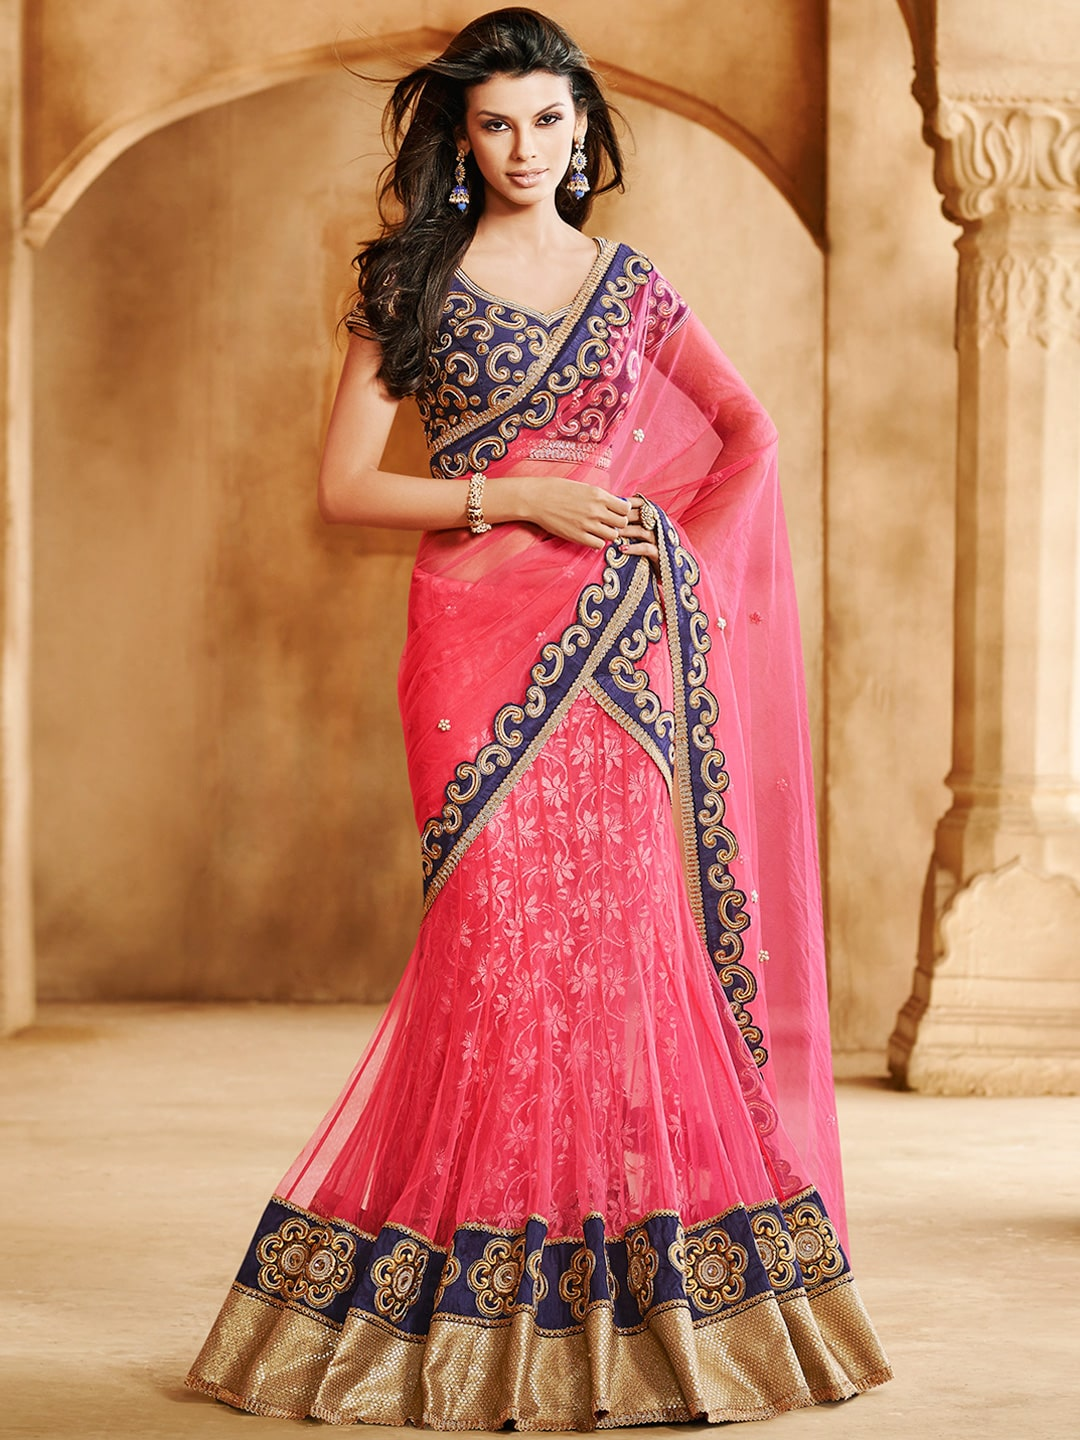 Best buy coupons code - Prelika Tsr2505 Pink Embroidered Net Partywear Lehenga Saree Price In